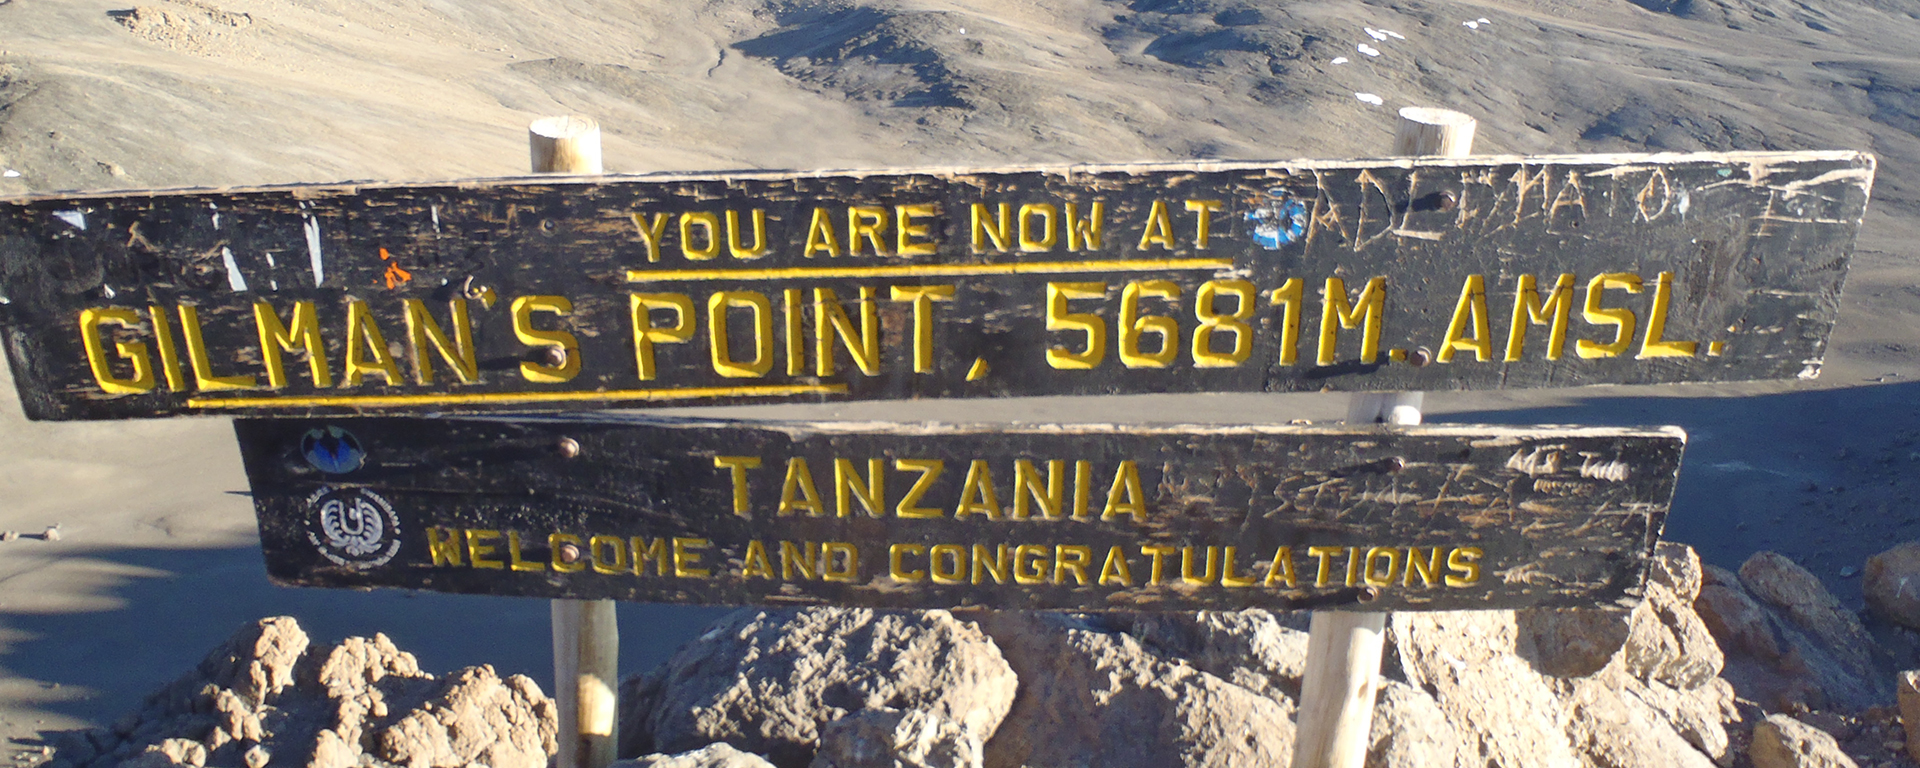 Although Gilman's Point is the 'technical top' of Kili, it's about another 2-hour trek to Uhuru Peak.